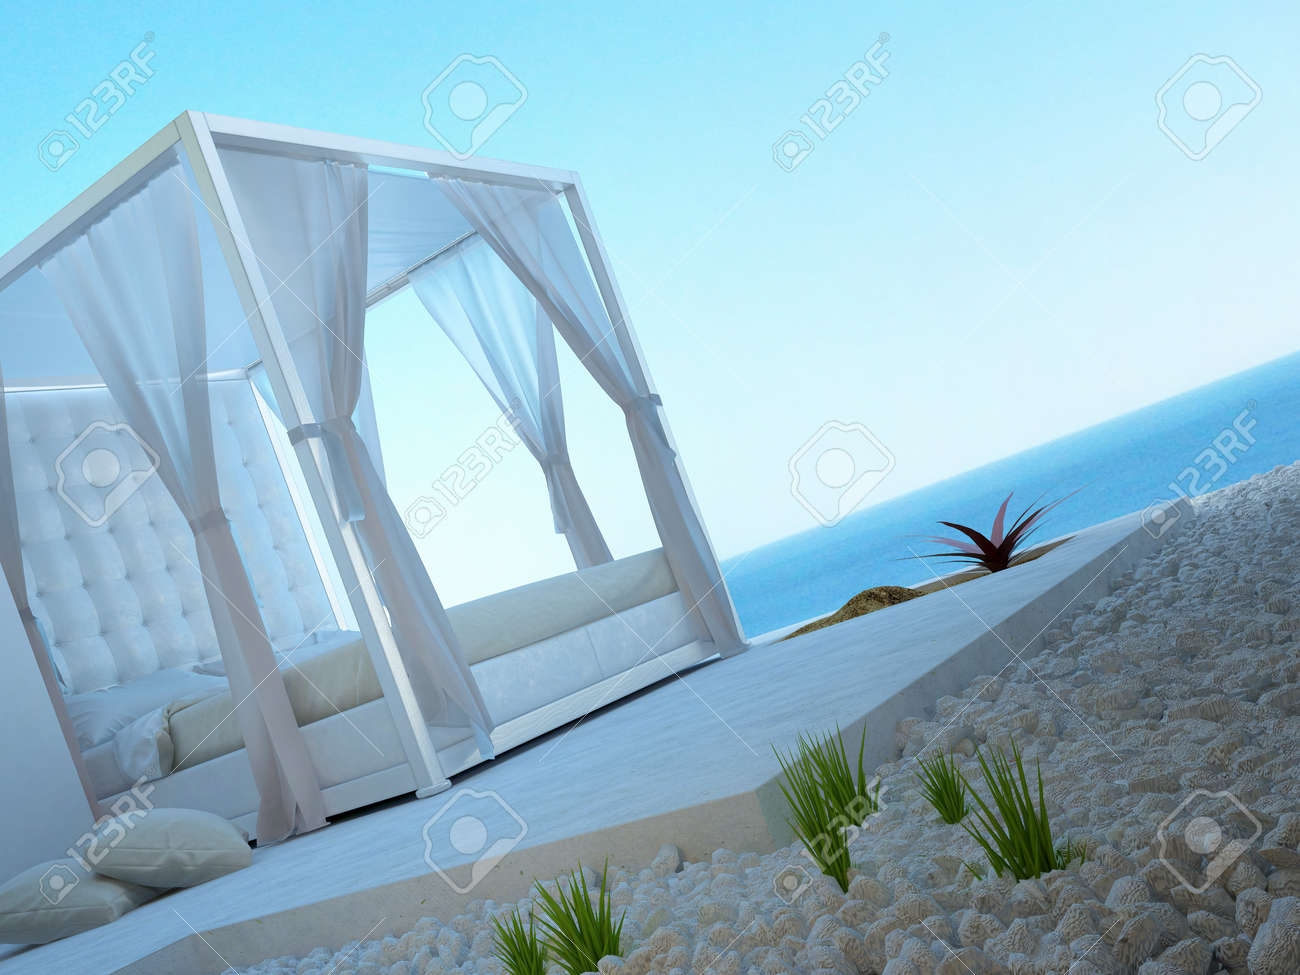 Superb Outside Bed Part - 14: Sunny Patio With Seascape View And Outside Bed Stock Photo - 25065606